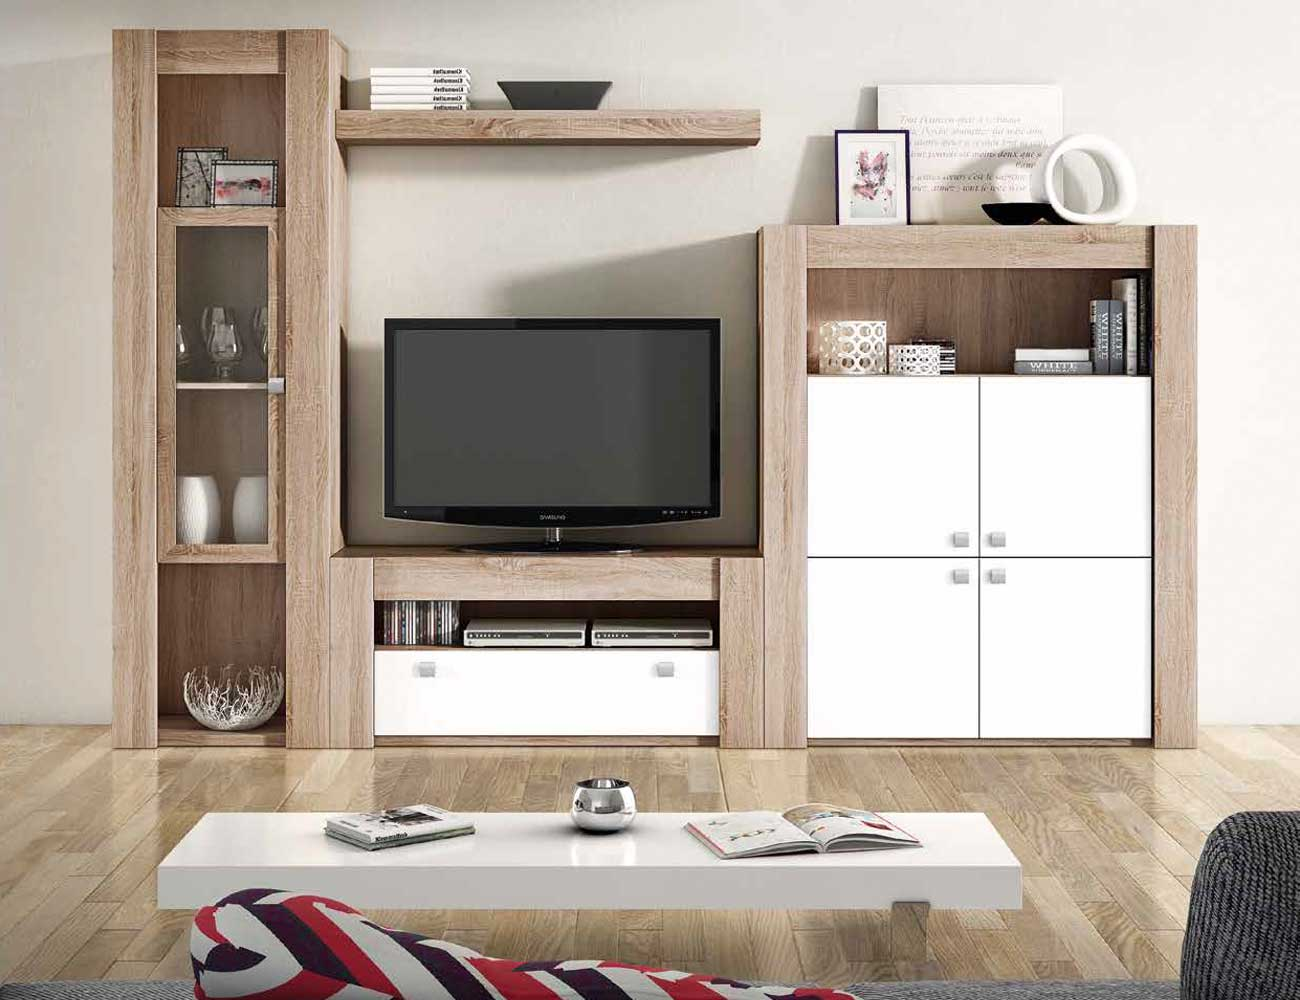 Mueble de sal n modular moderno en cambrian blanco for Mueble salon moderno blanco